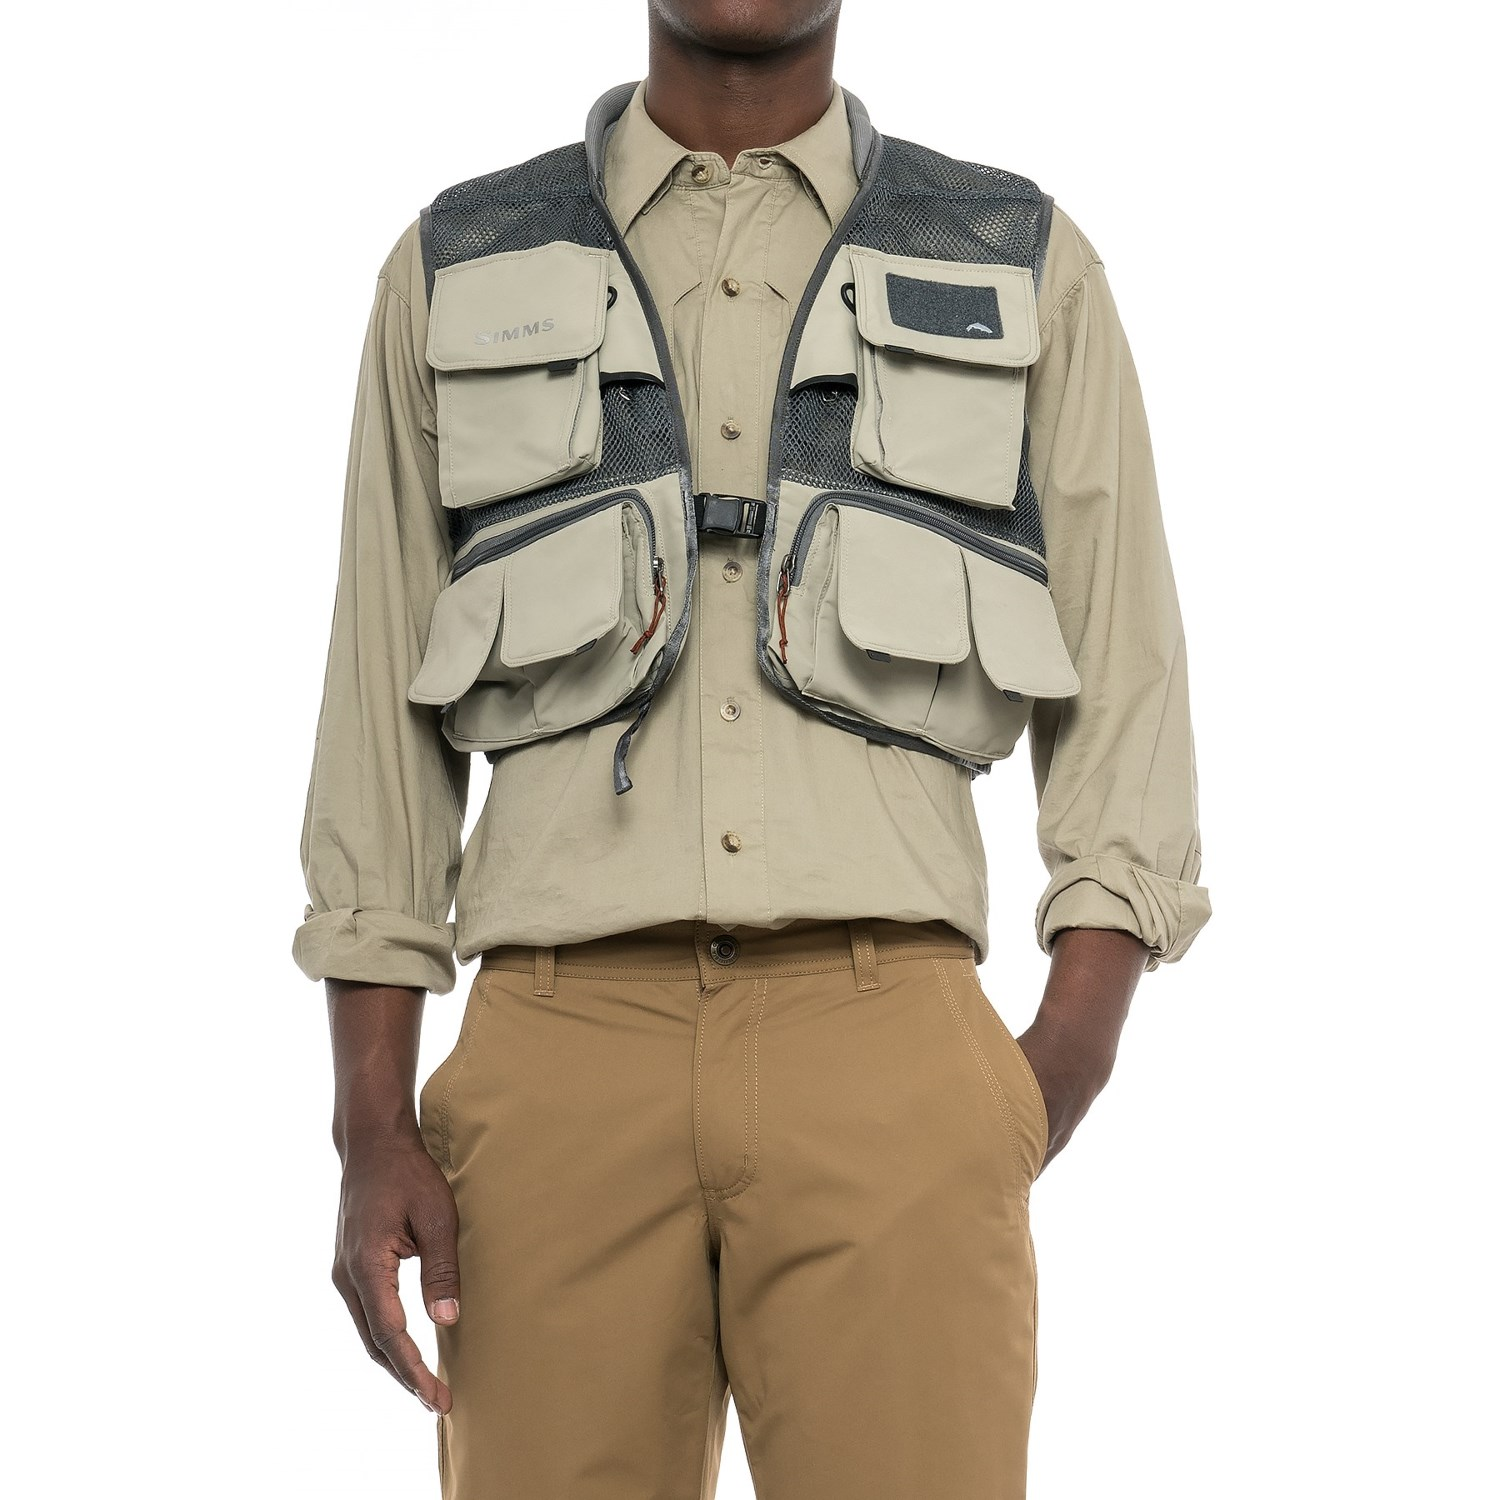 Simms headwaters mesh fishing vest for men save 62 for Mens fishing vest